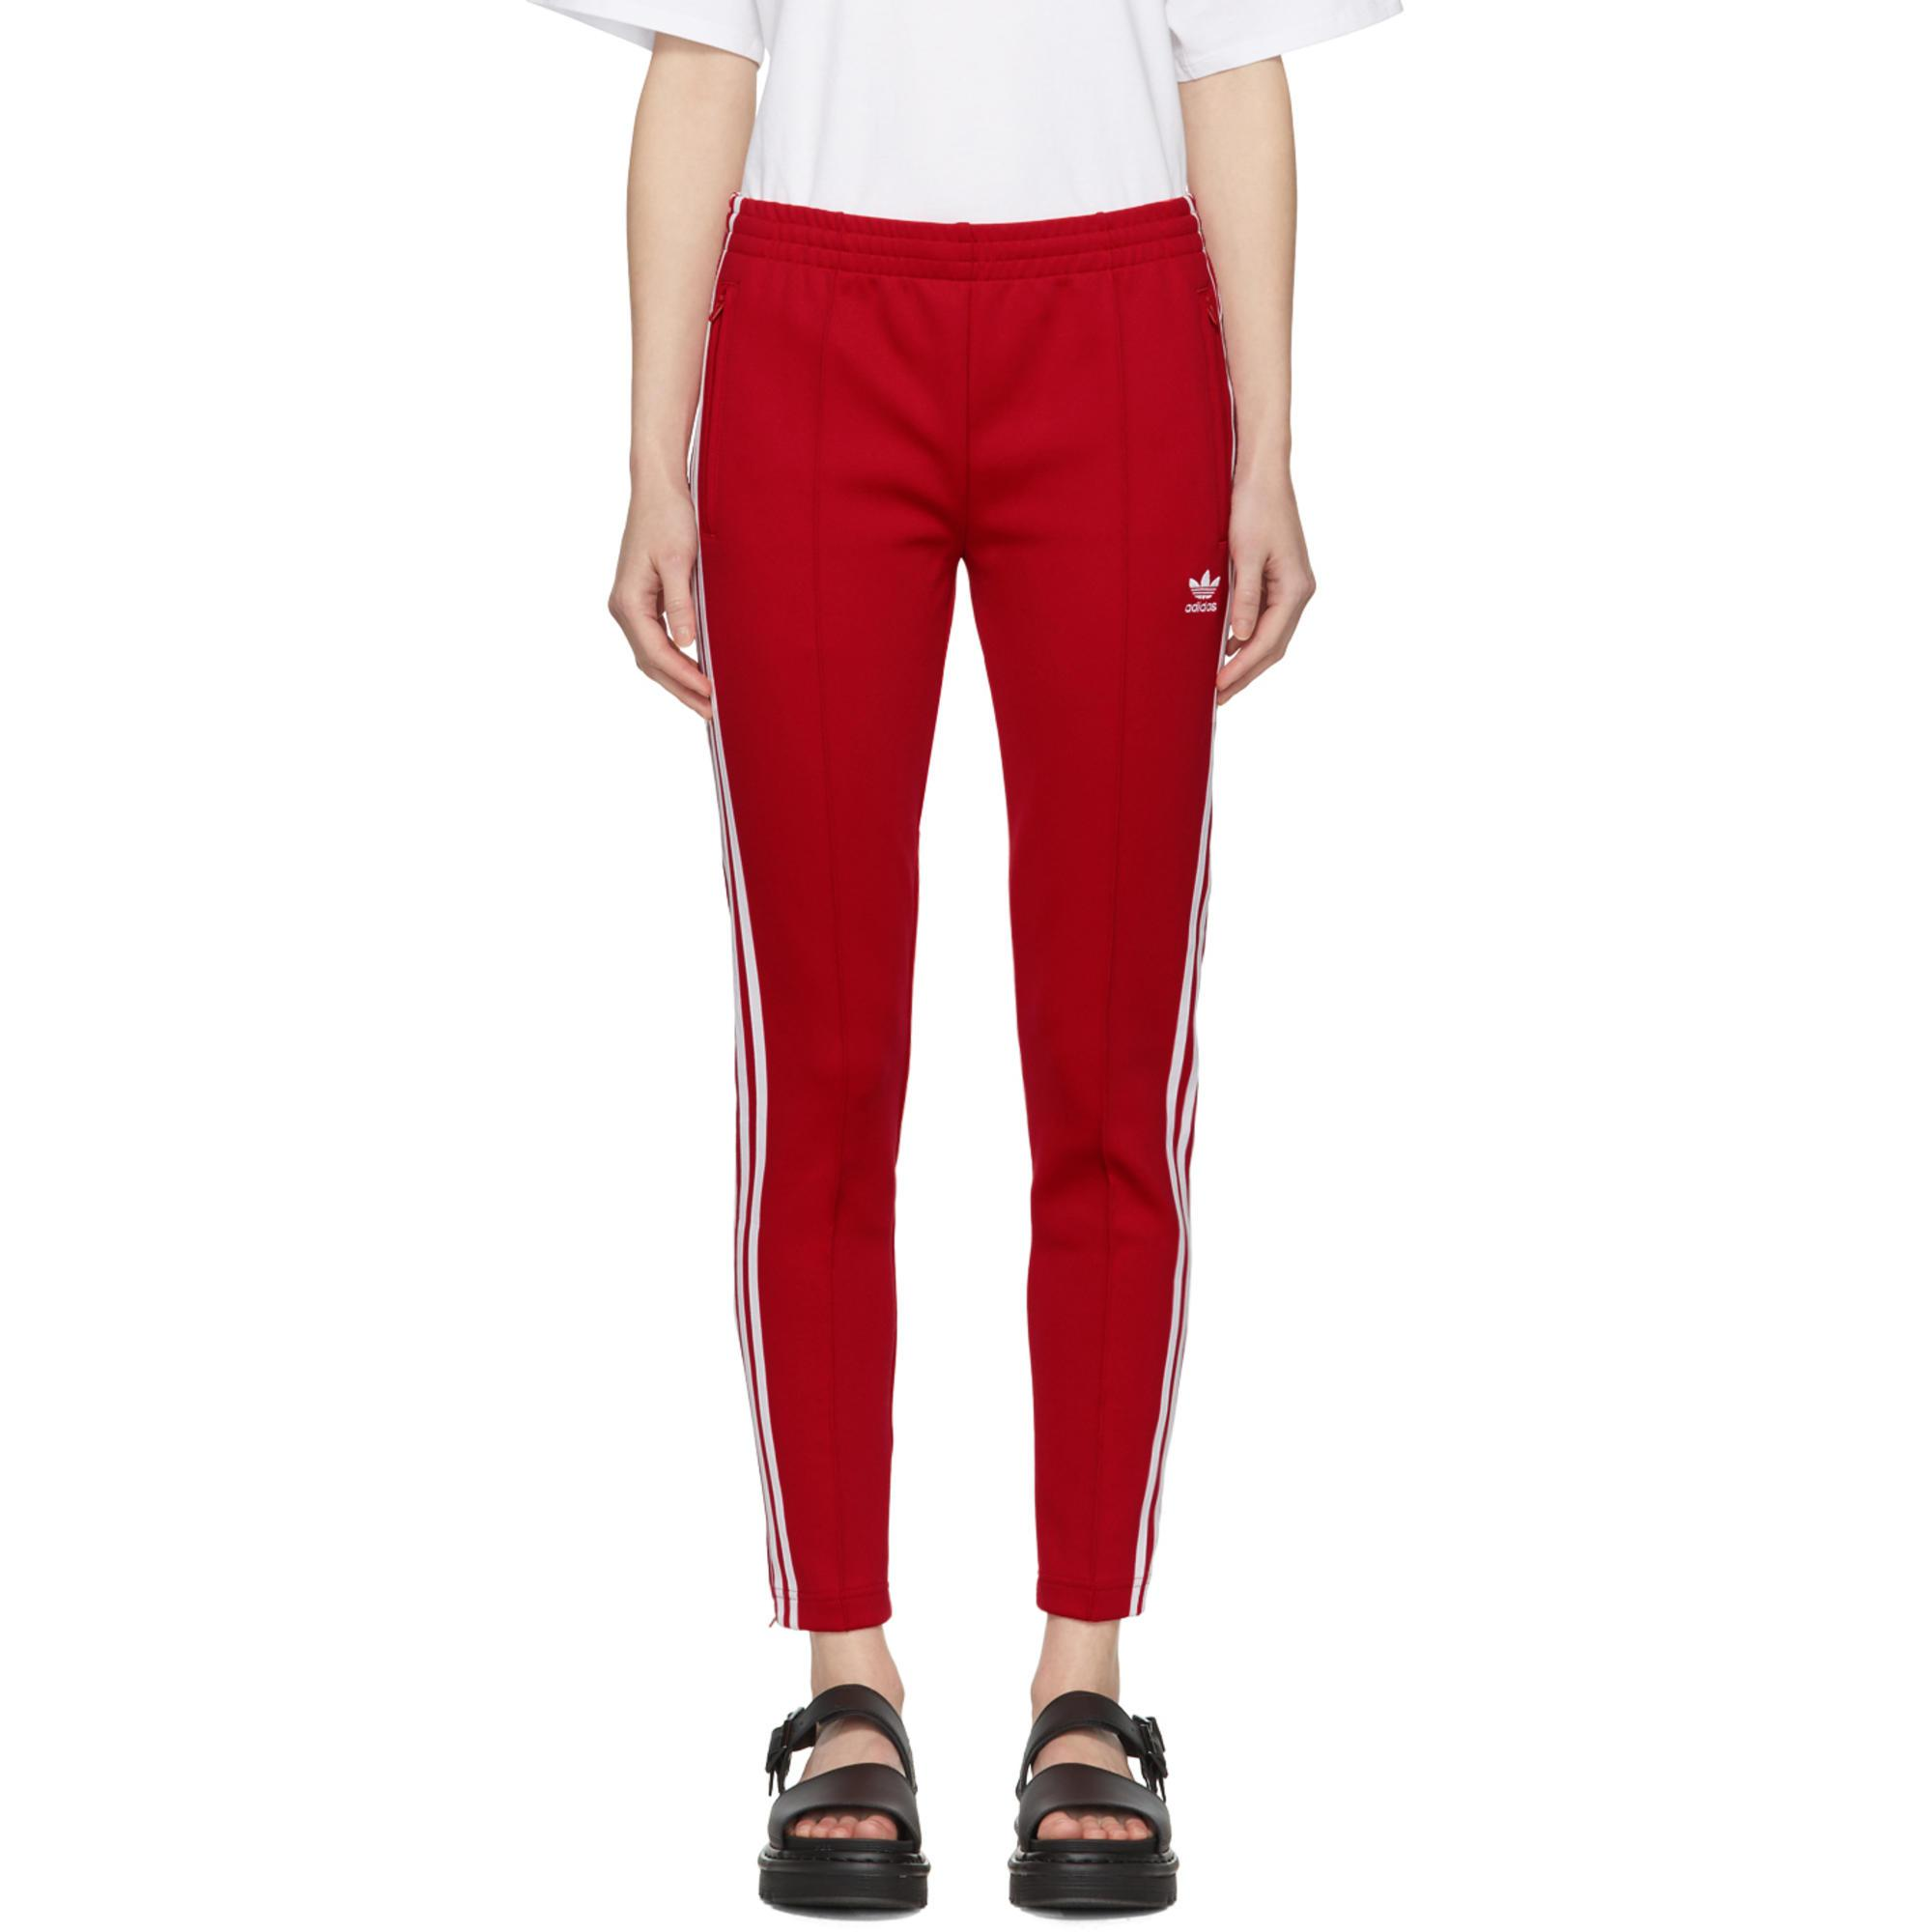 Lyst - Pantalon de survêtement rouge SST adidas Originals en coloris ... faf4c070ffb